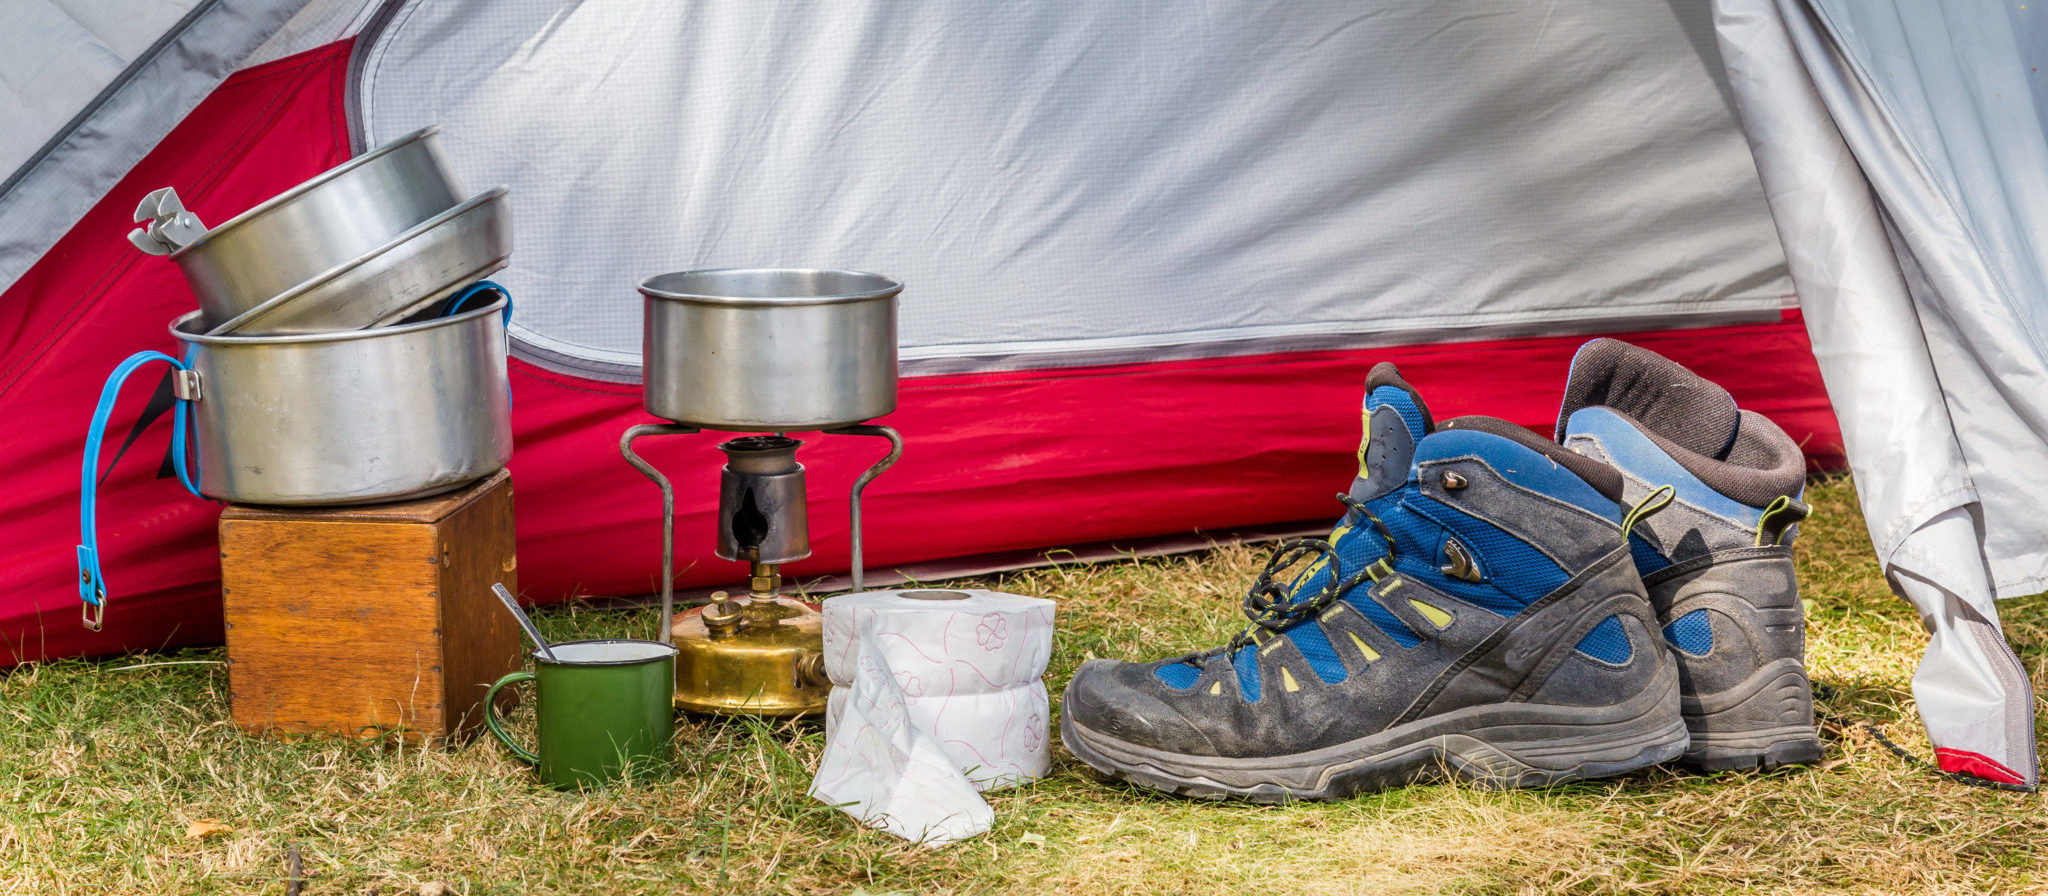 Make sure to bring along the essentials anytime you head out in the wilderness, and that includes toilet paper!